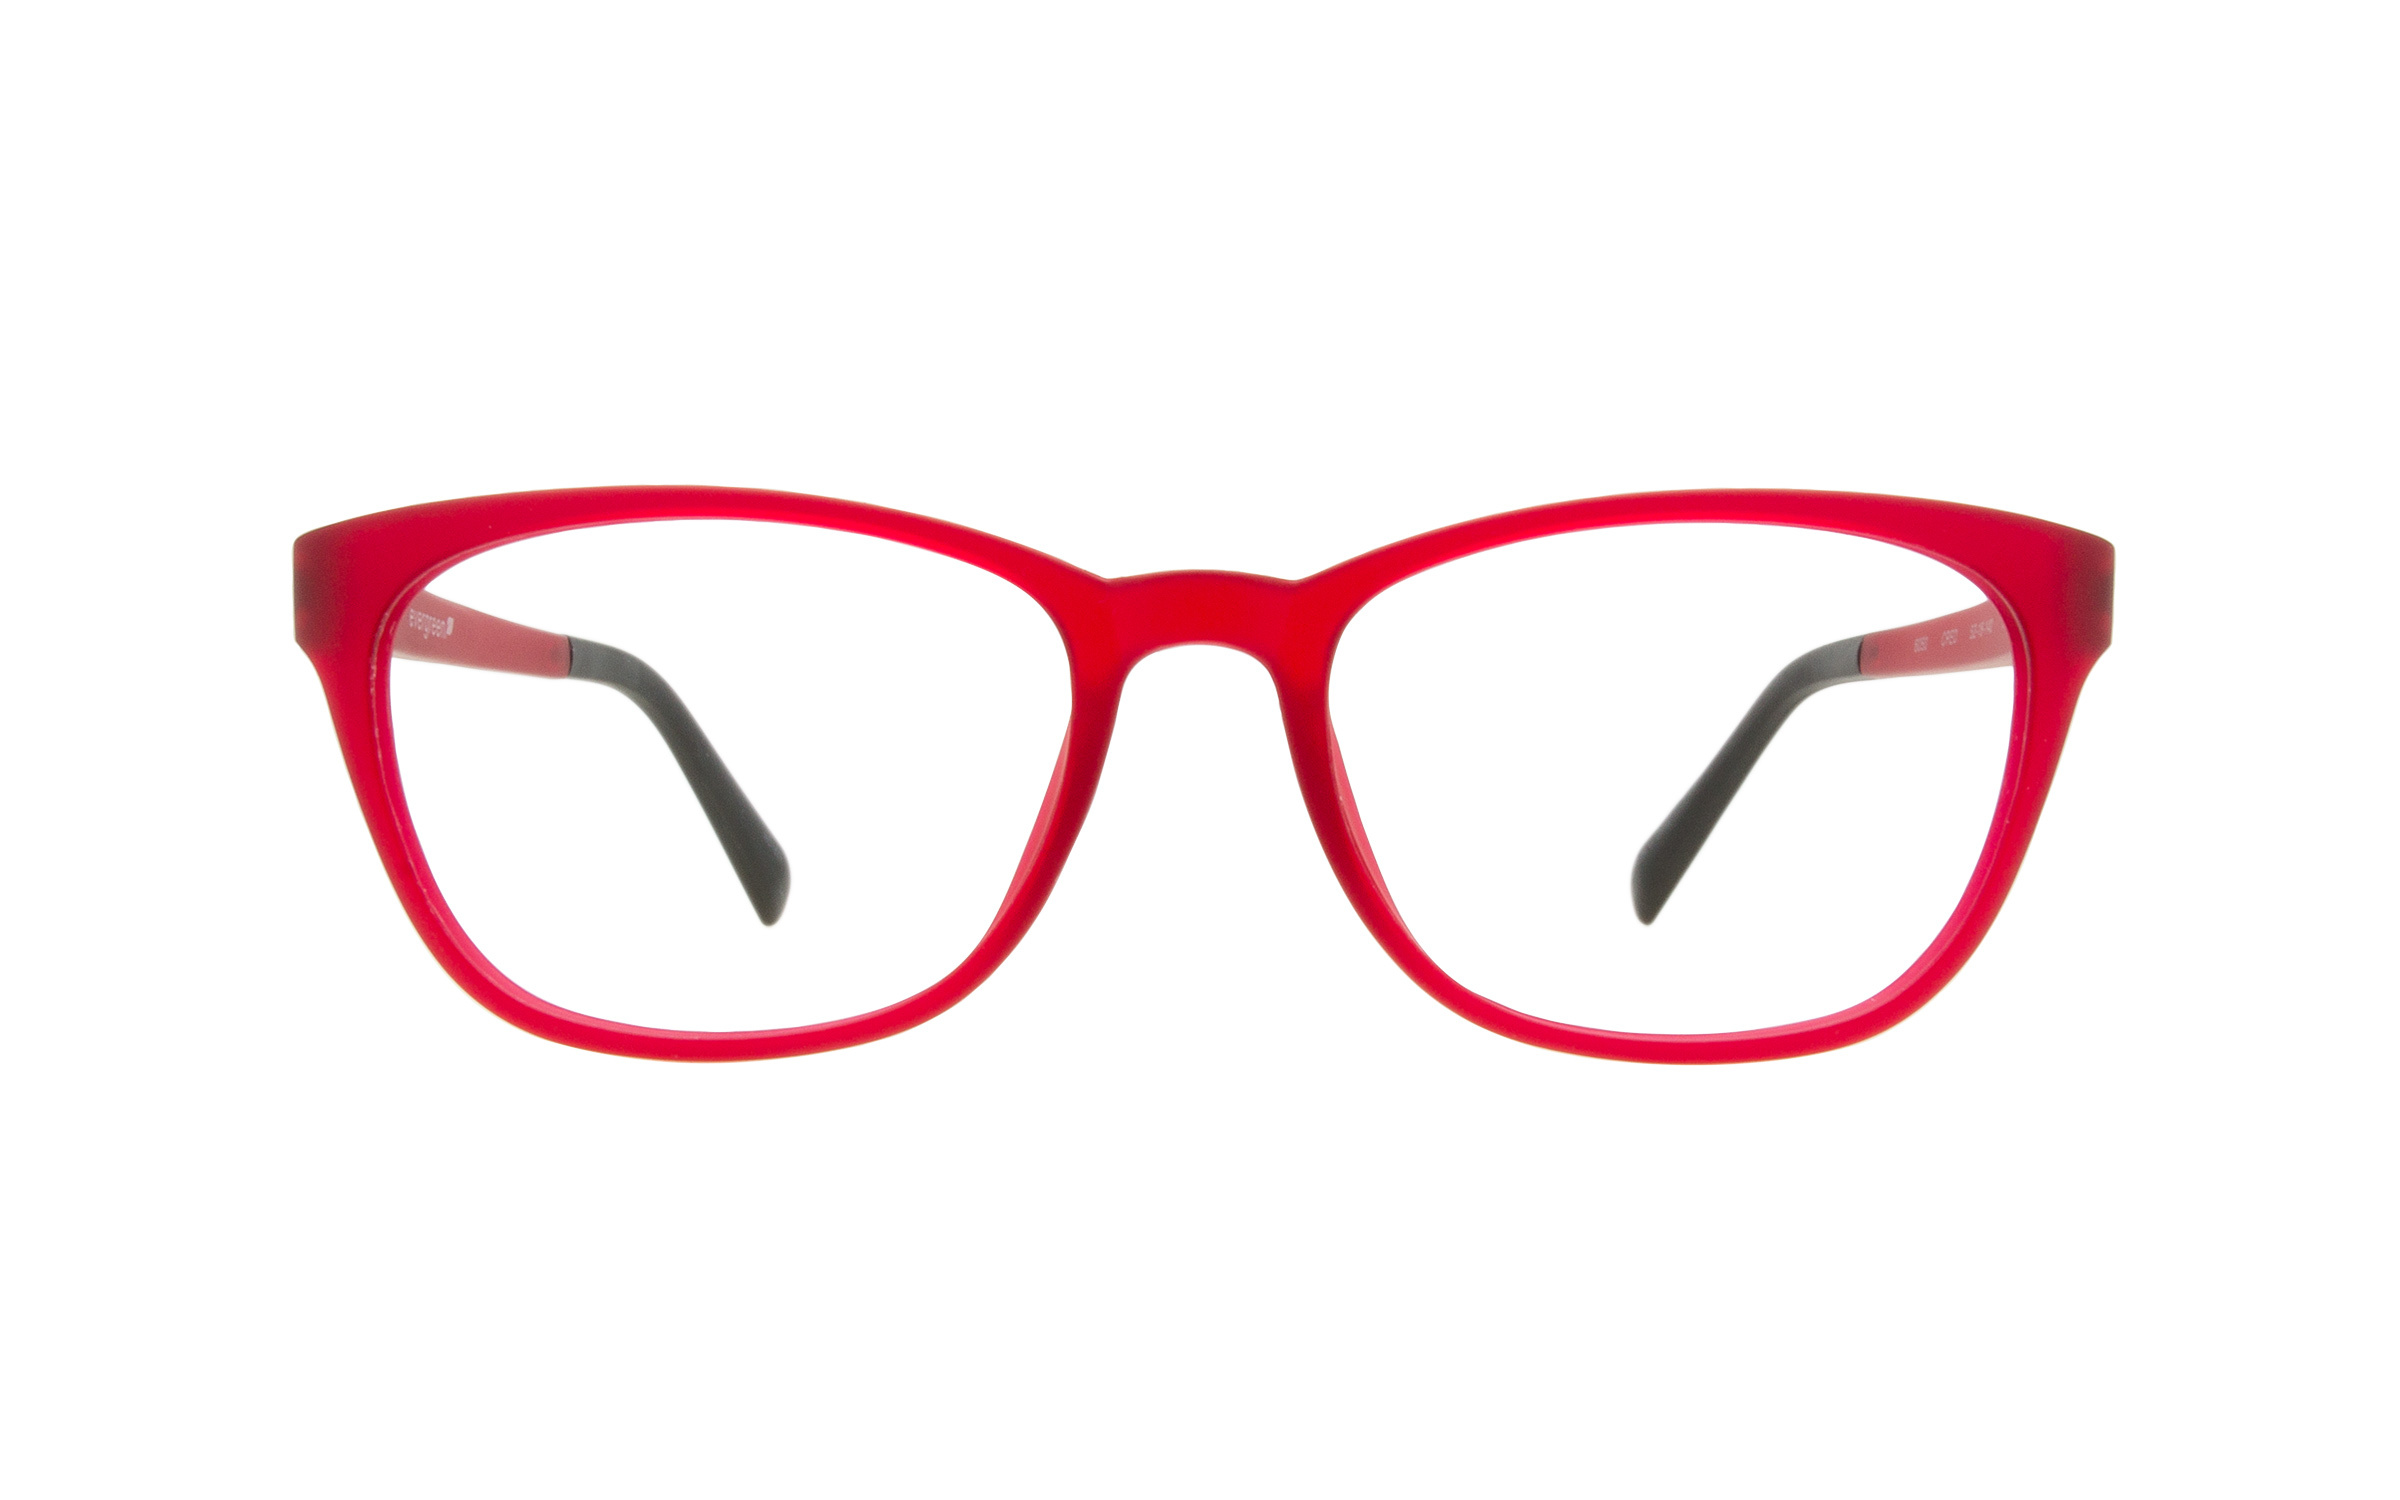 shop with confidence for evergreen 6050 52 glasses